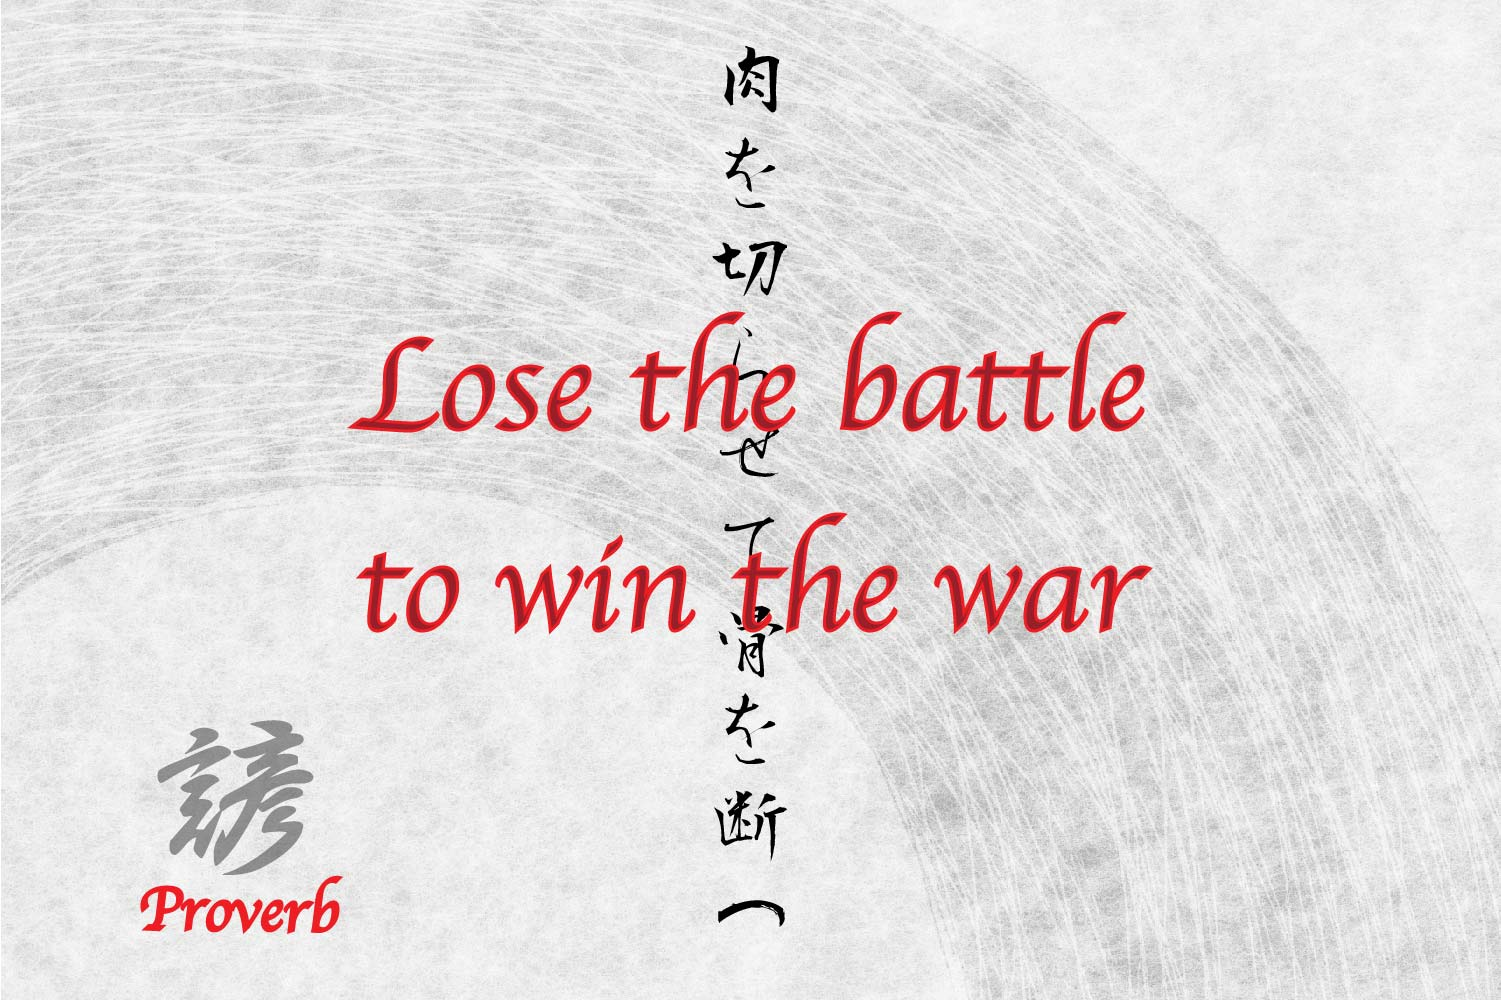 Japanese Saying/Proverb for Tattoo Idea